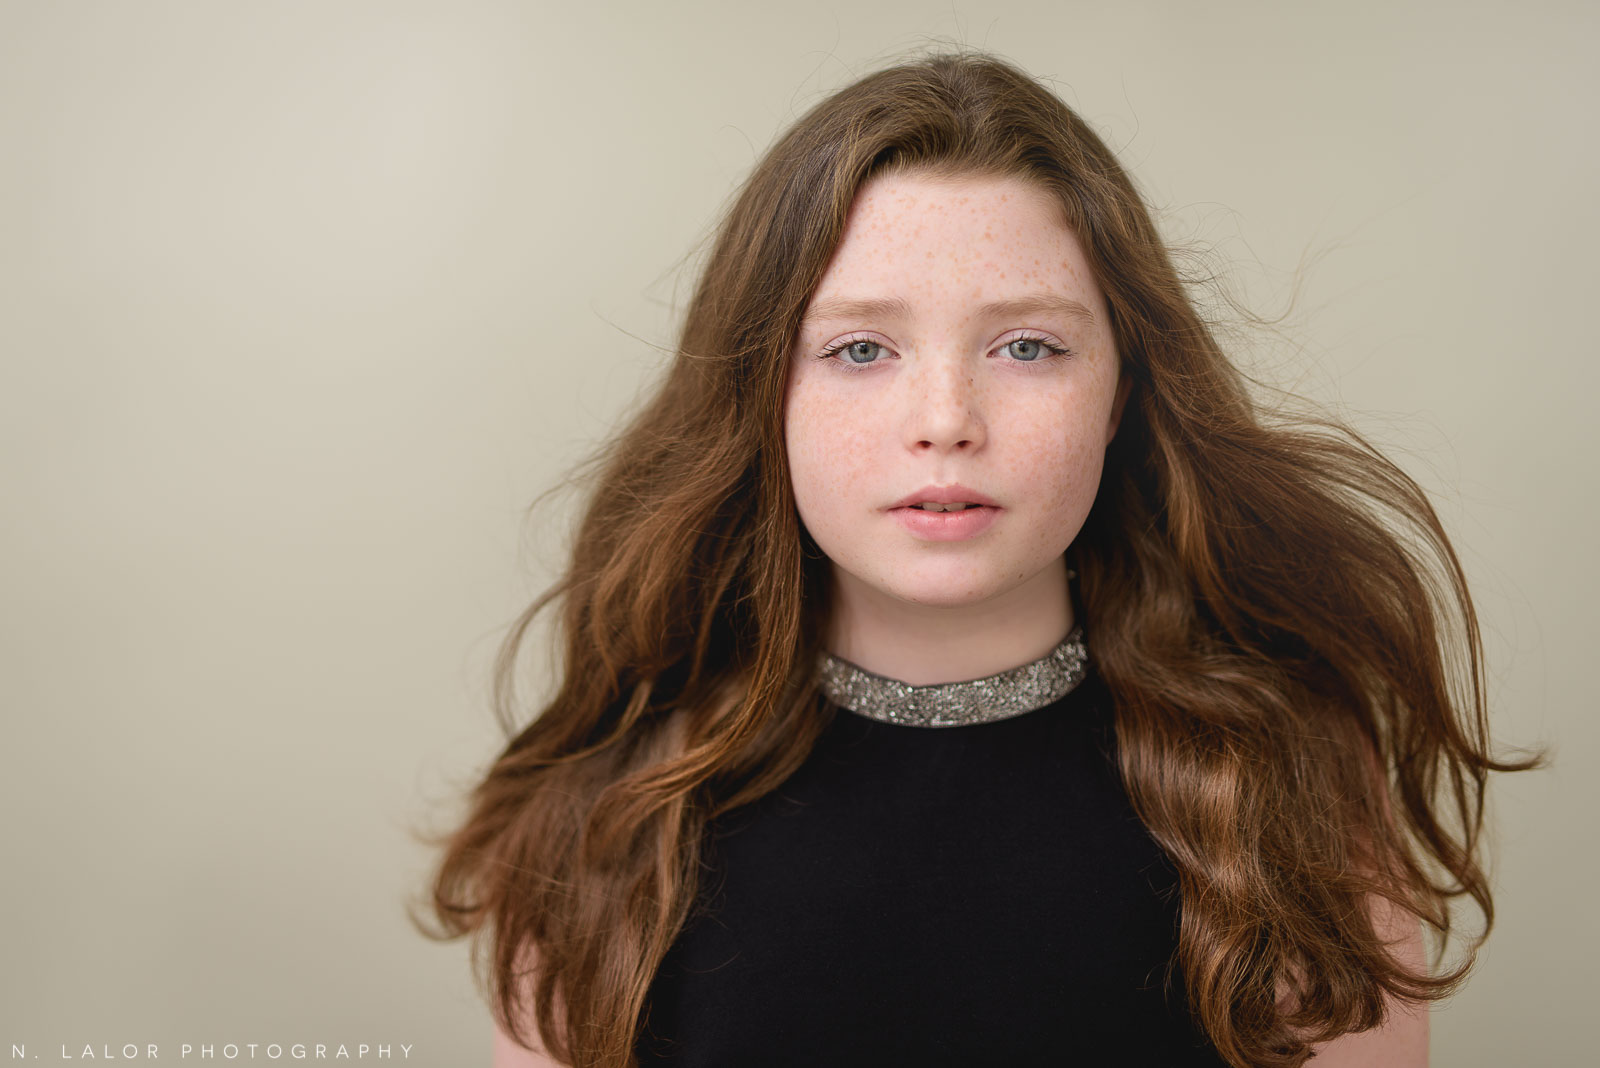 Photo of a young tween girl. Studio portrait by N. Lalor Photography in Greenwich, Connecticut.